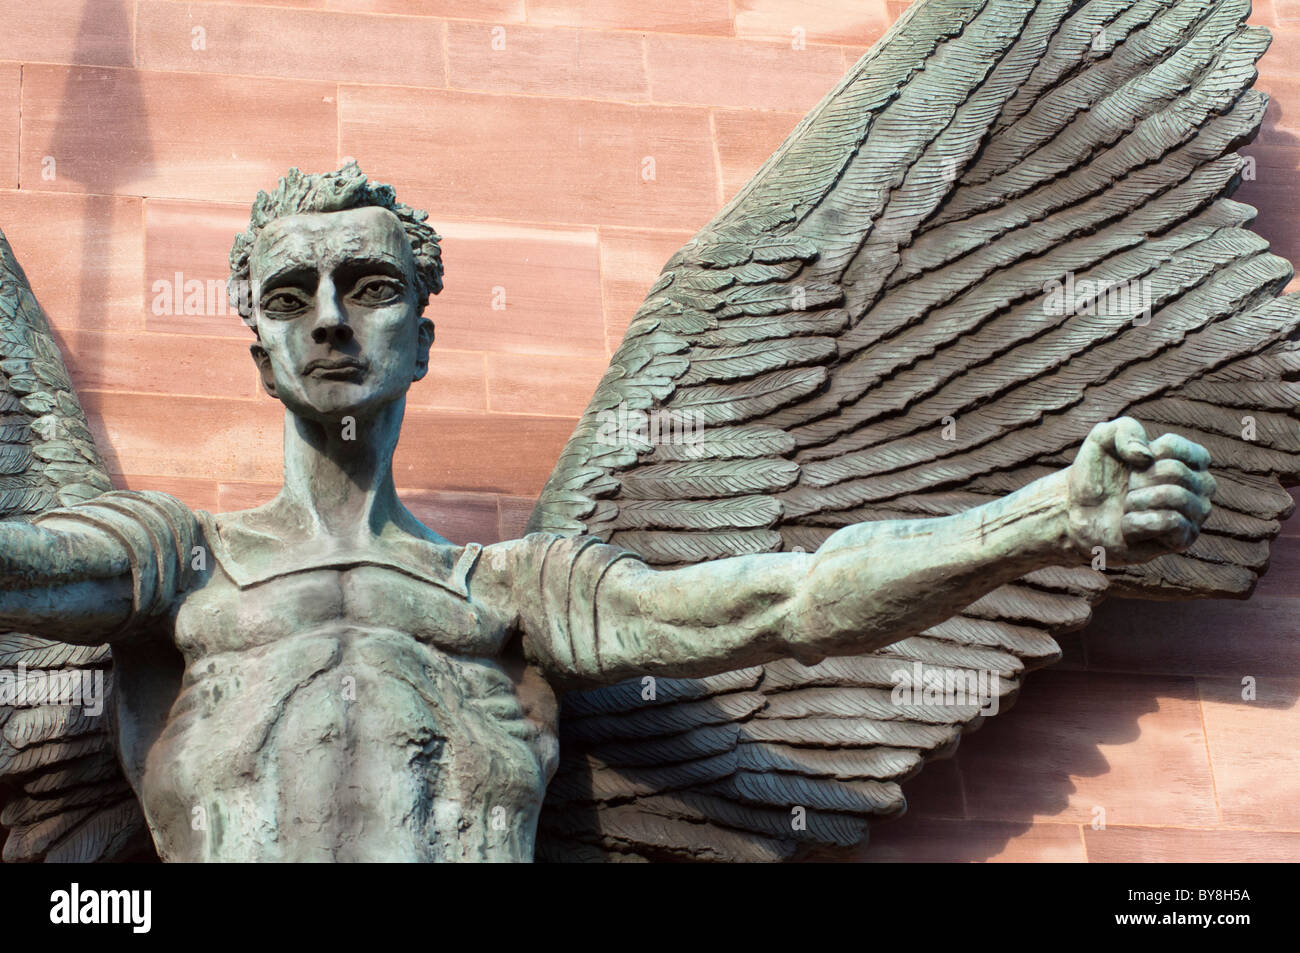 St Michael's Victory over the Devil, sculpture by Sir Jacob Epstein at St Michael's or Coventry Cathedral, - Stock Image